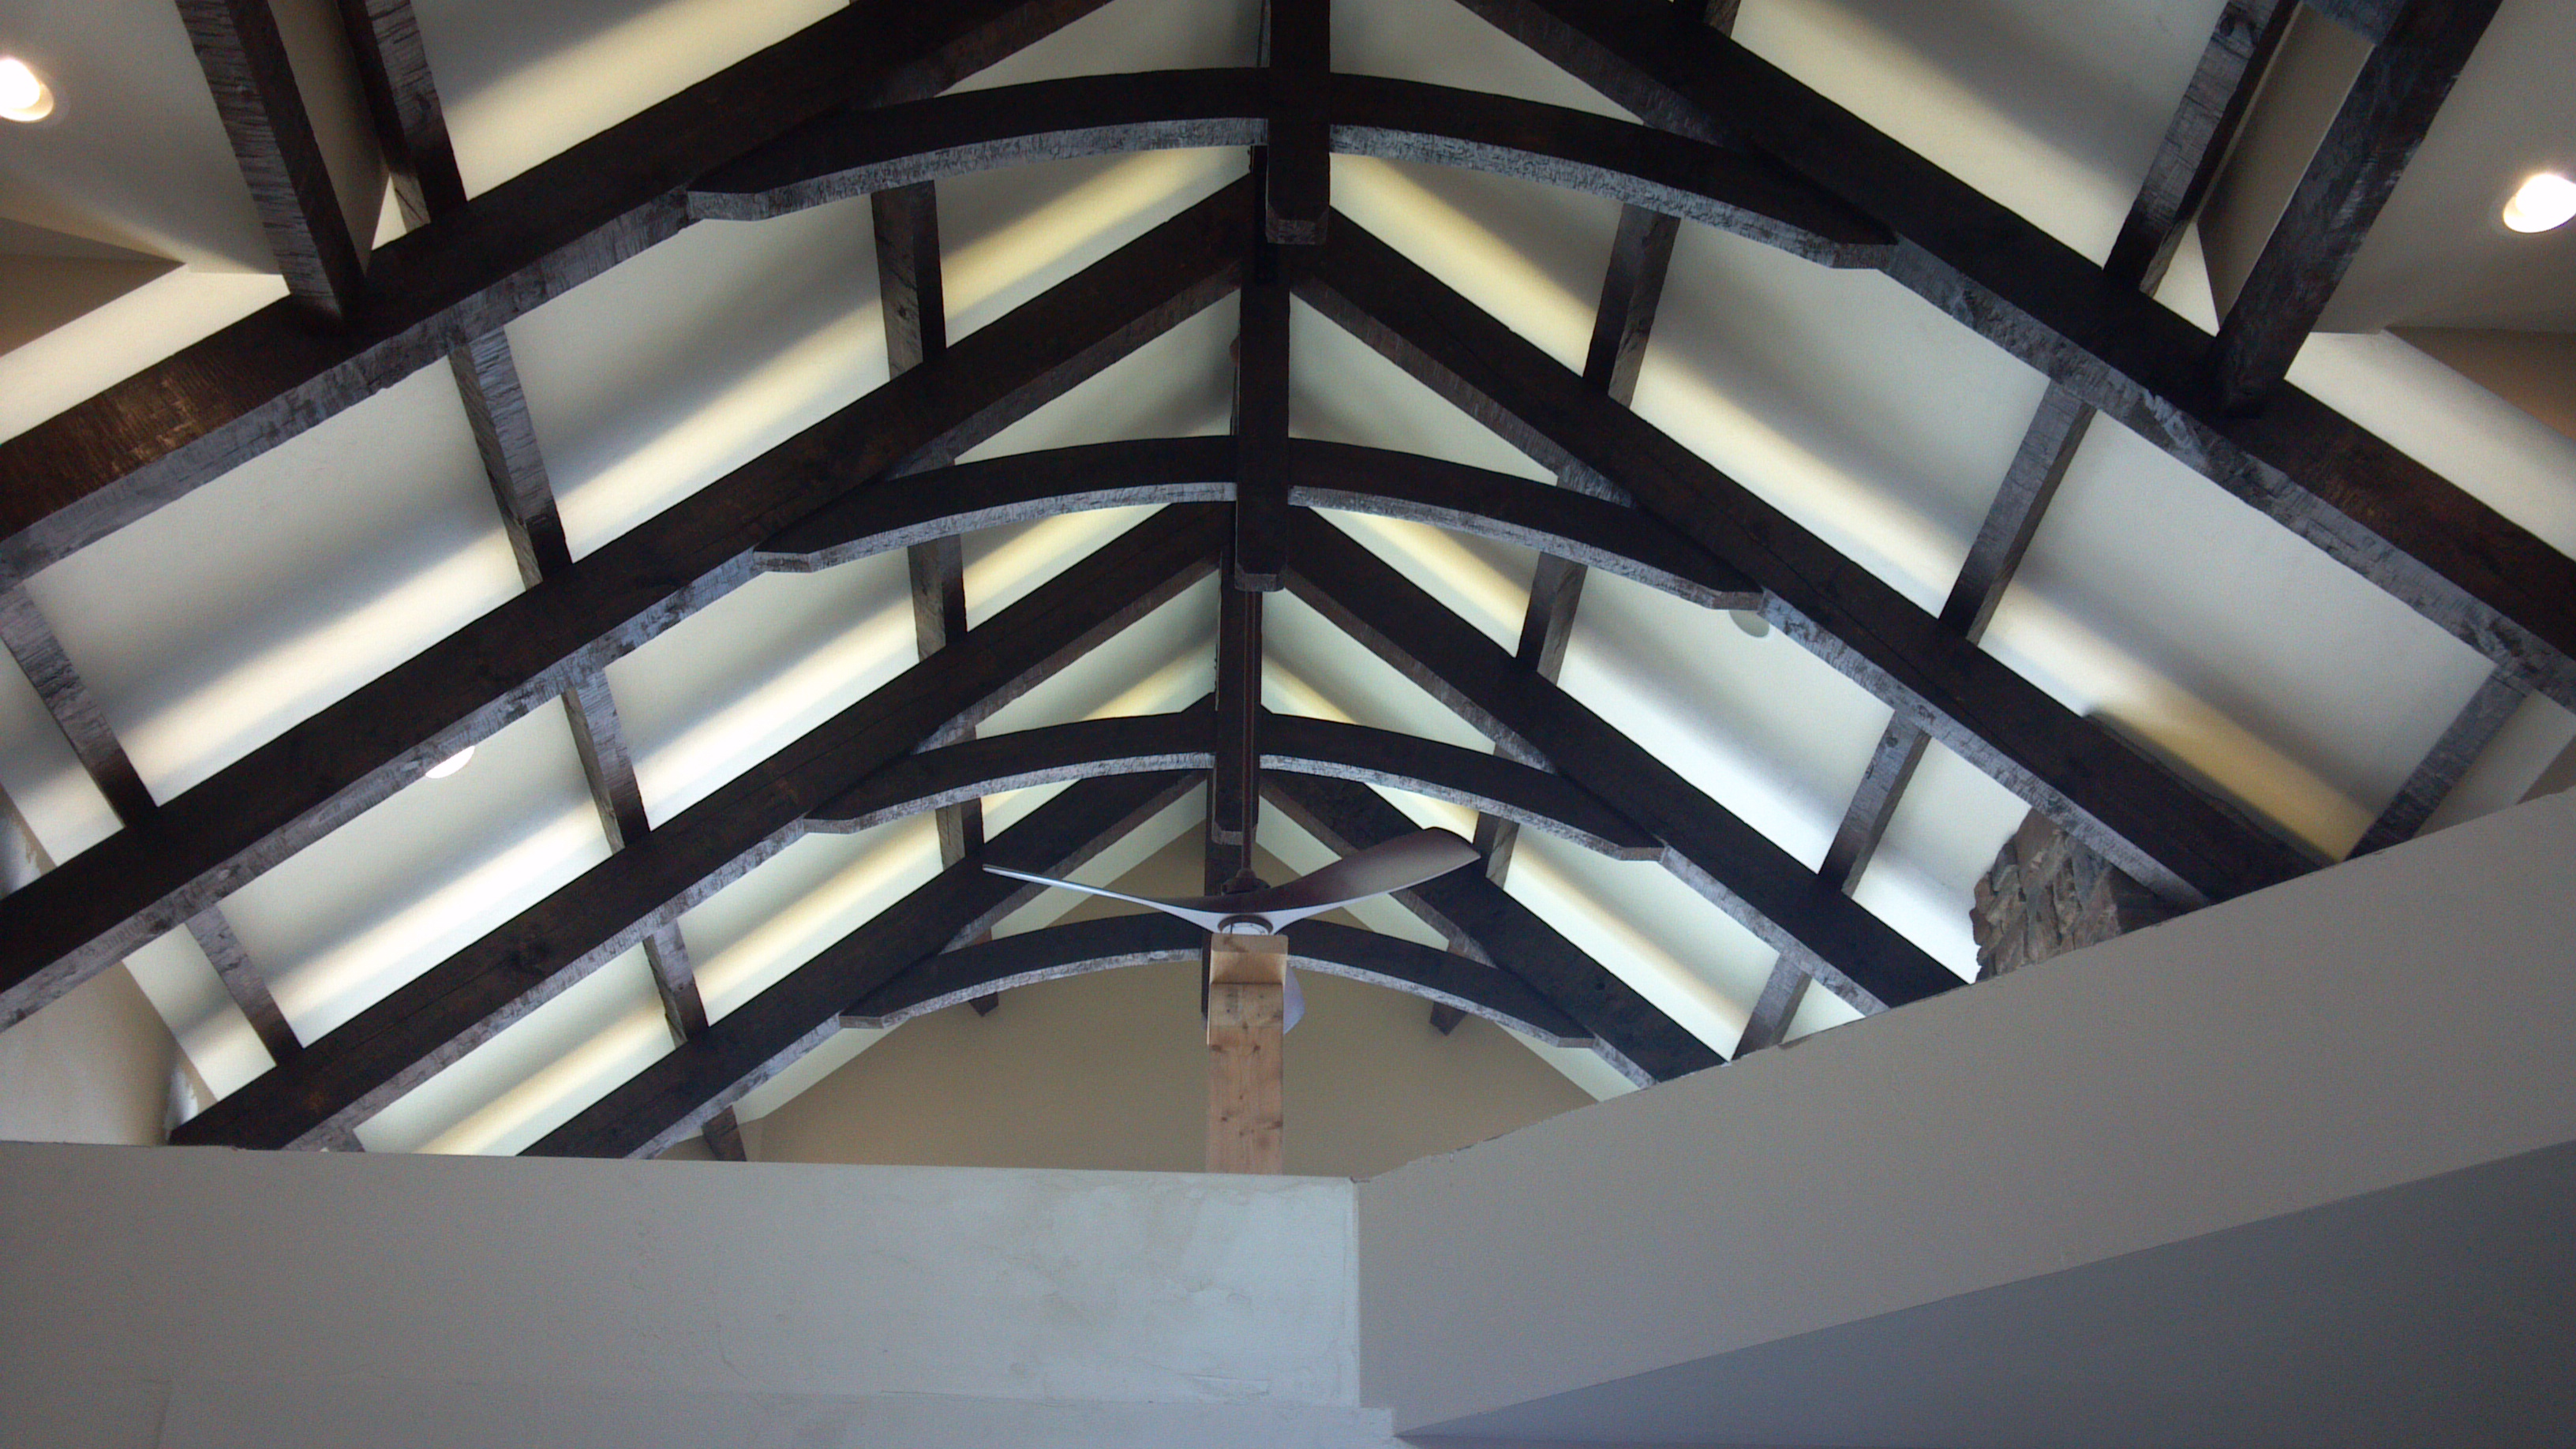 LIghted Rustic Trusses